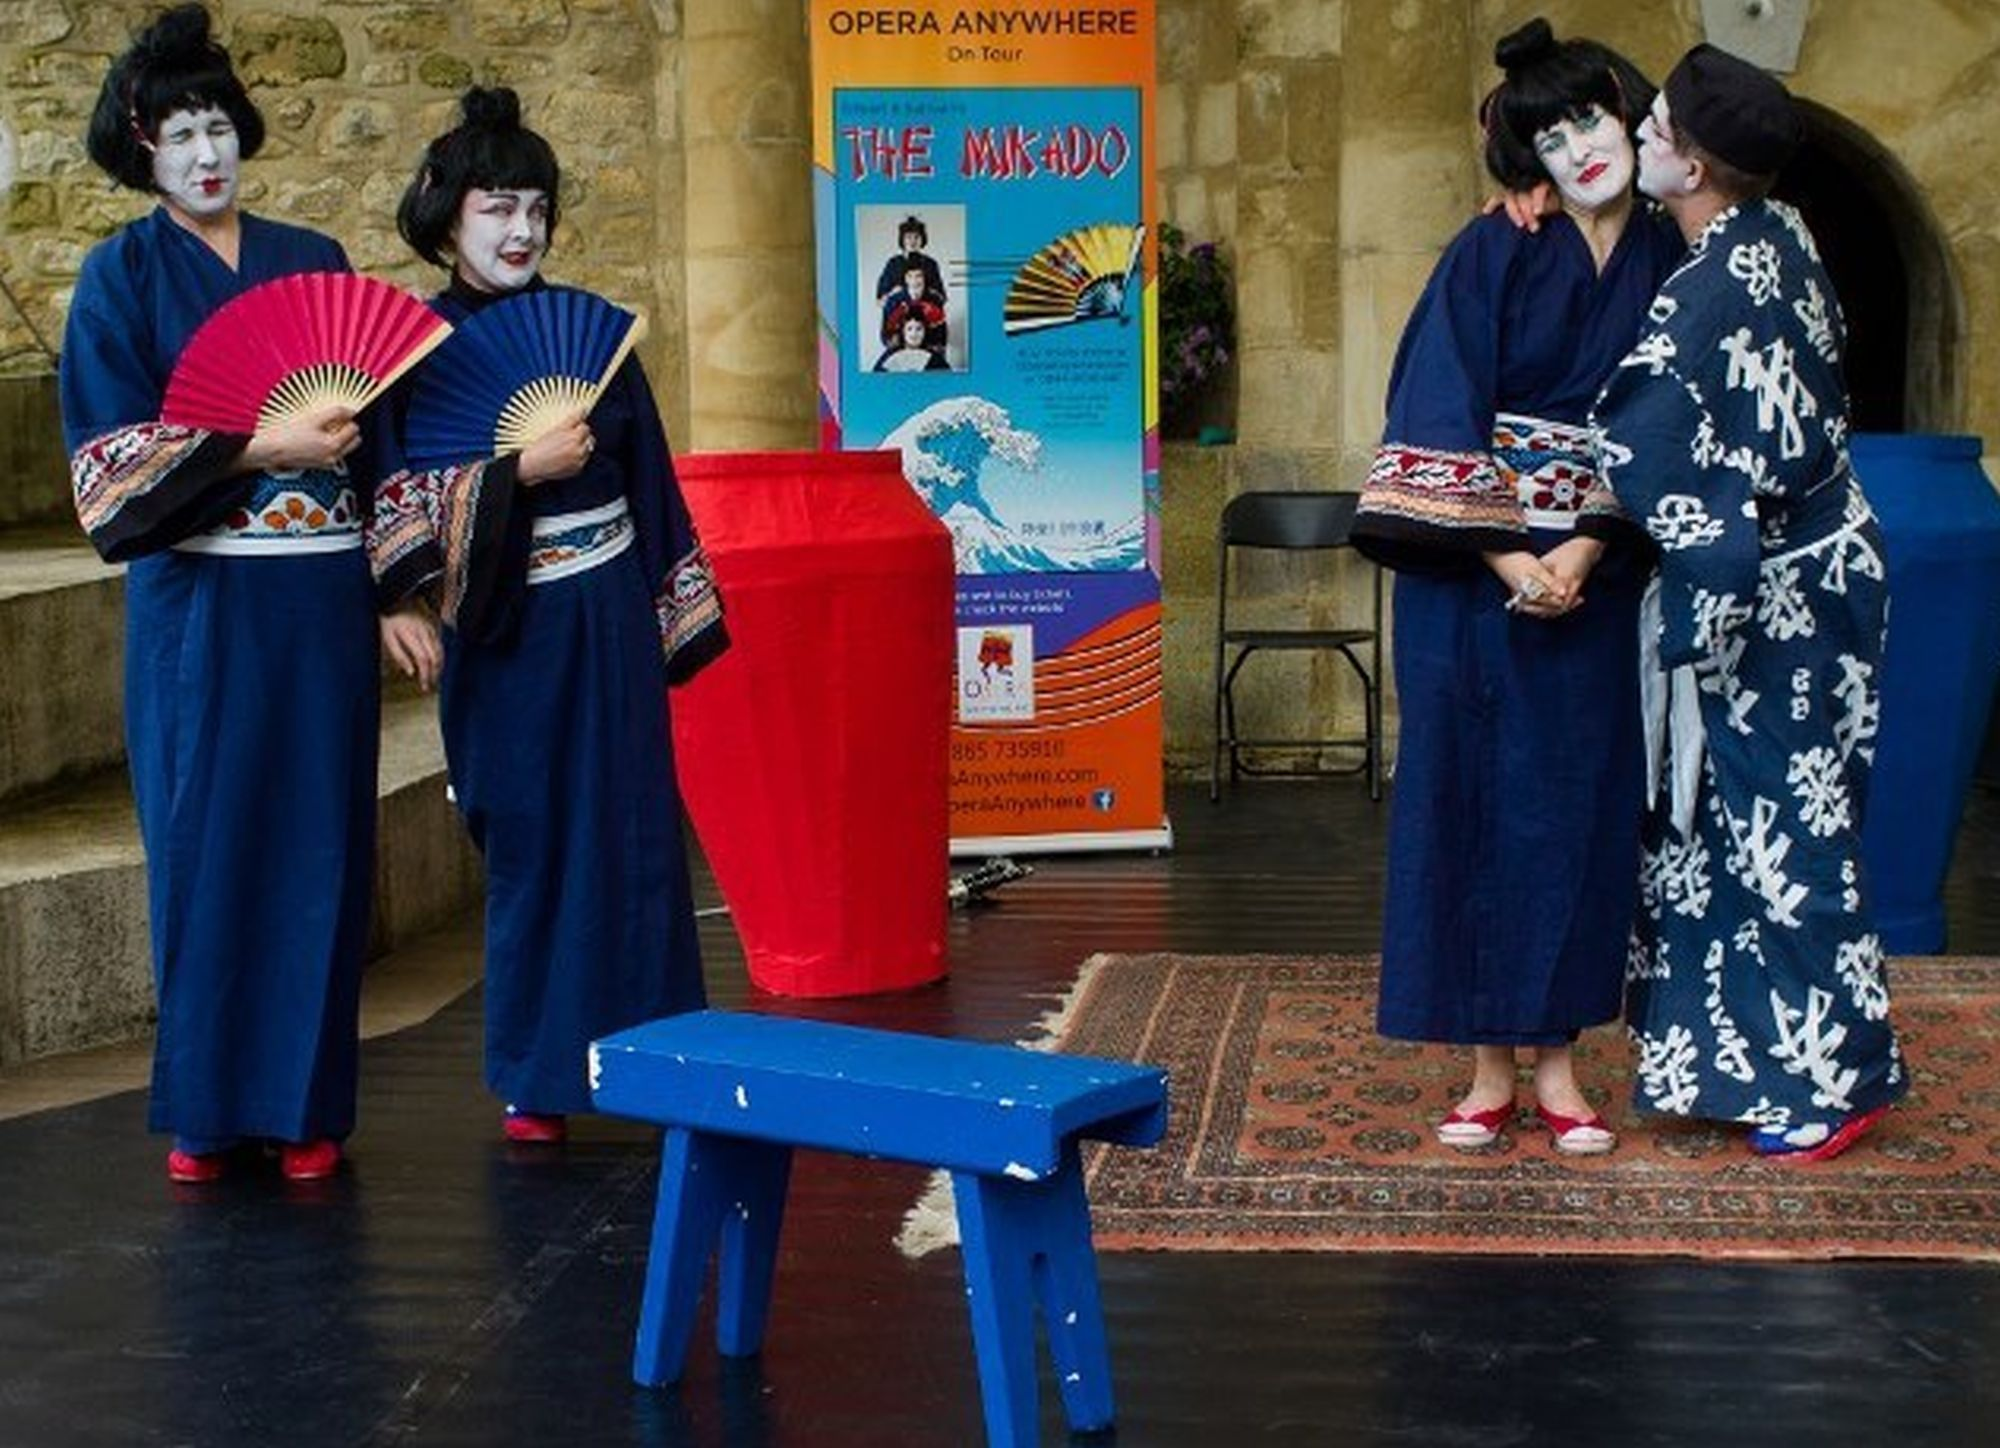 STAGE: Opera Anywhere is staging the Mikado in Dorchester